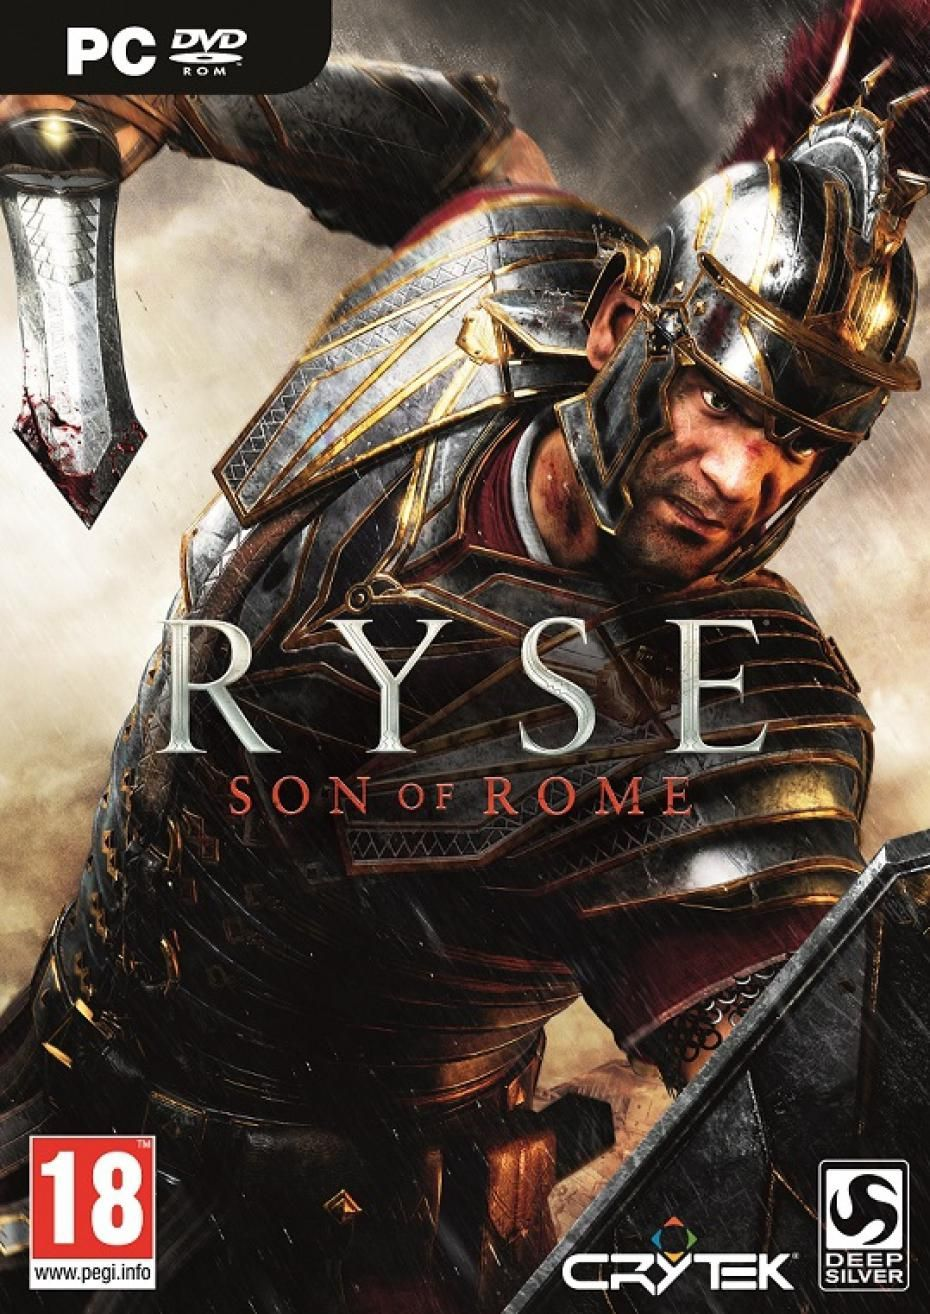 Ryse Son of Rome Game http//ift.tt/2frJd56 (With images